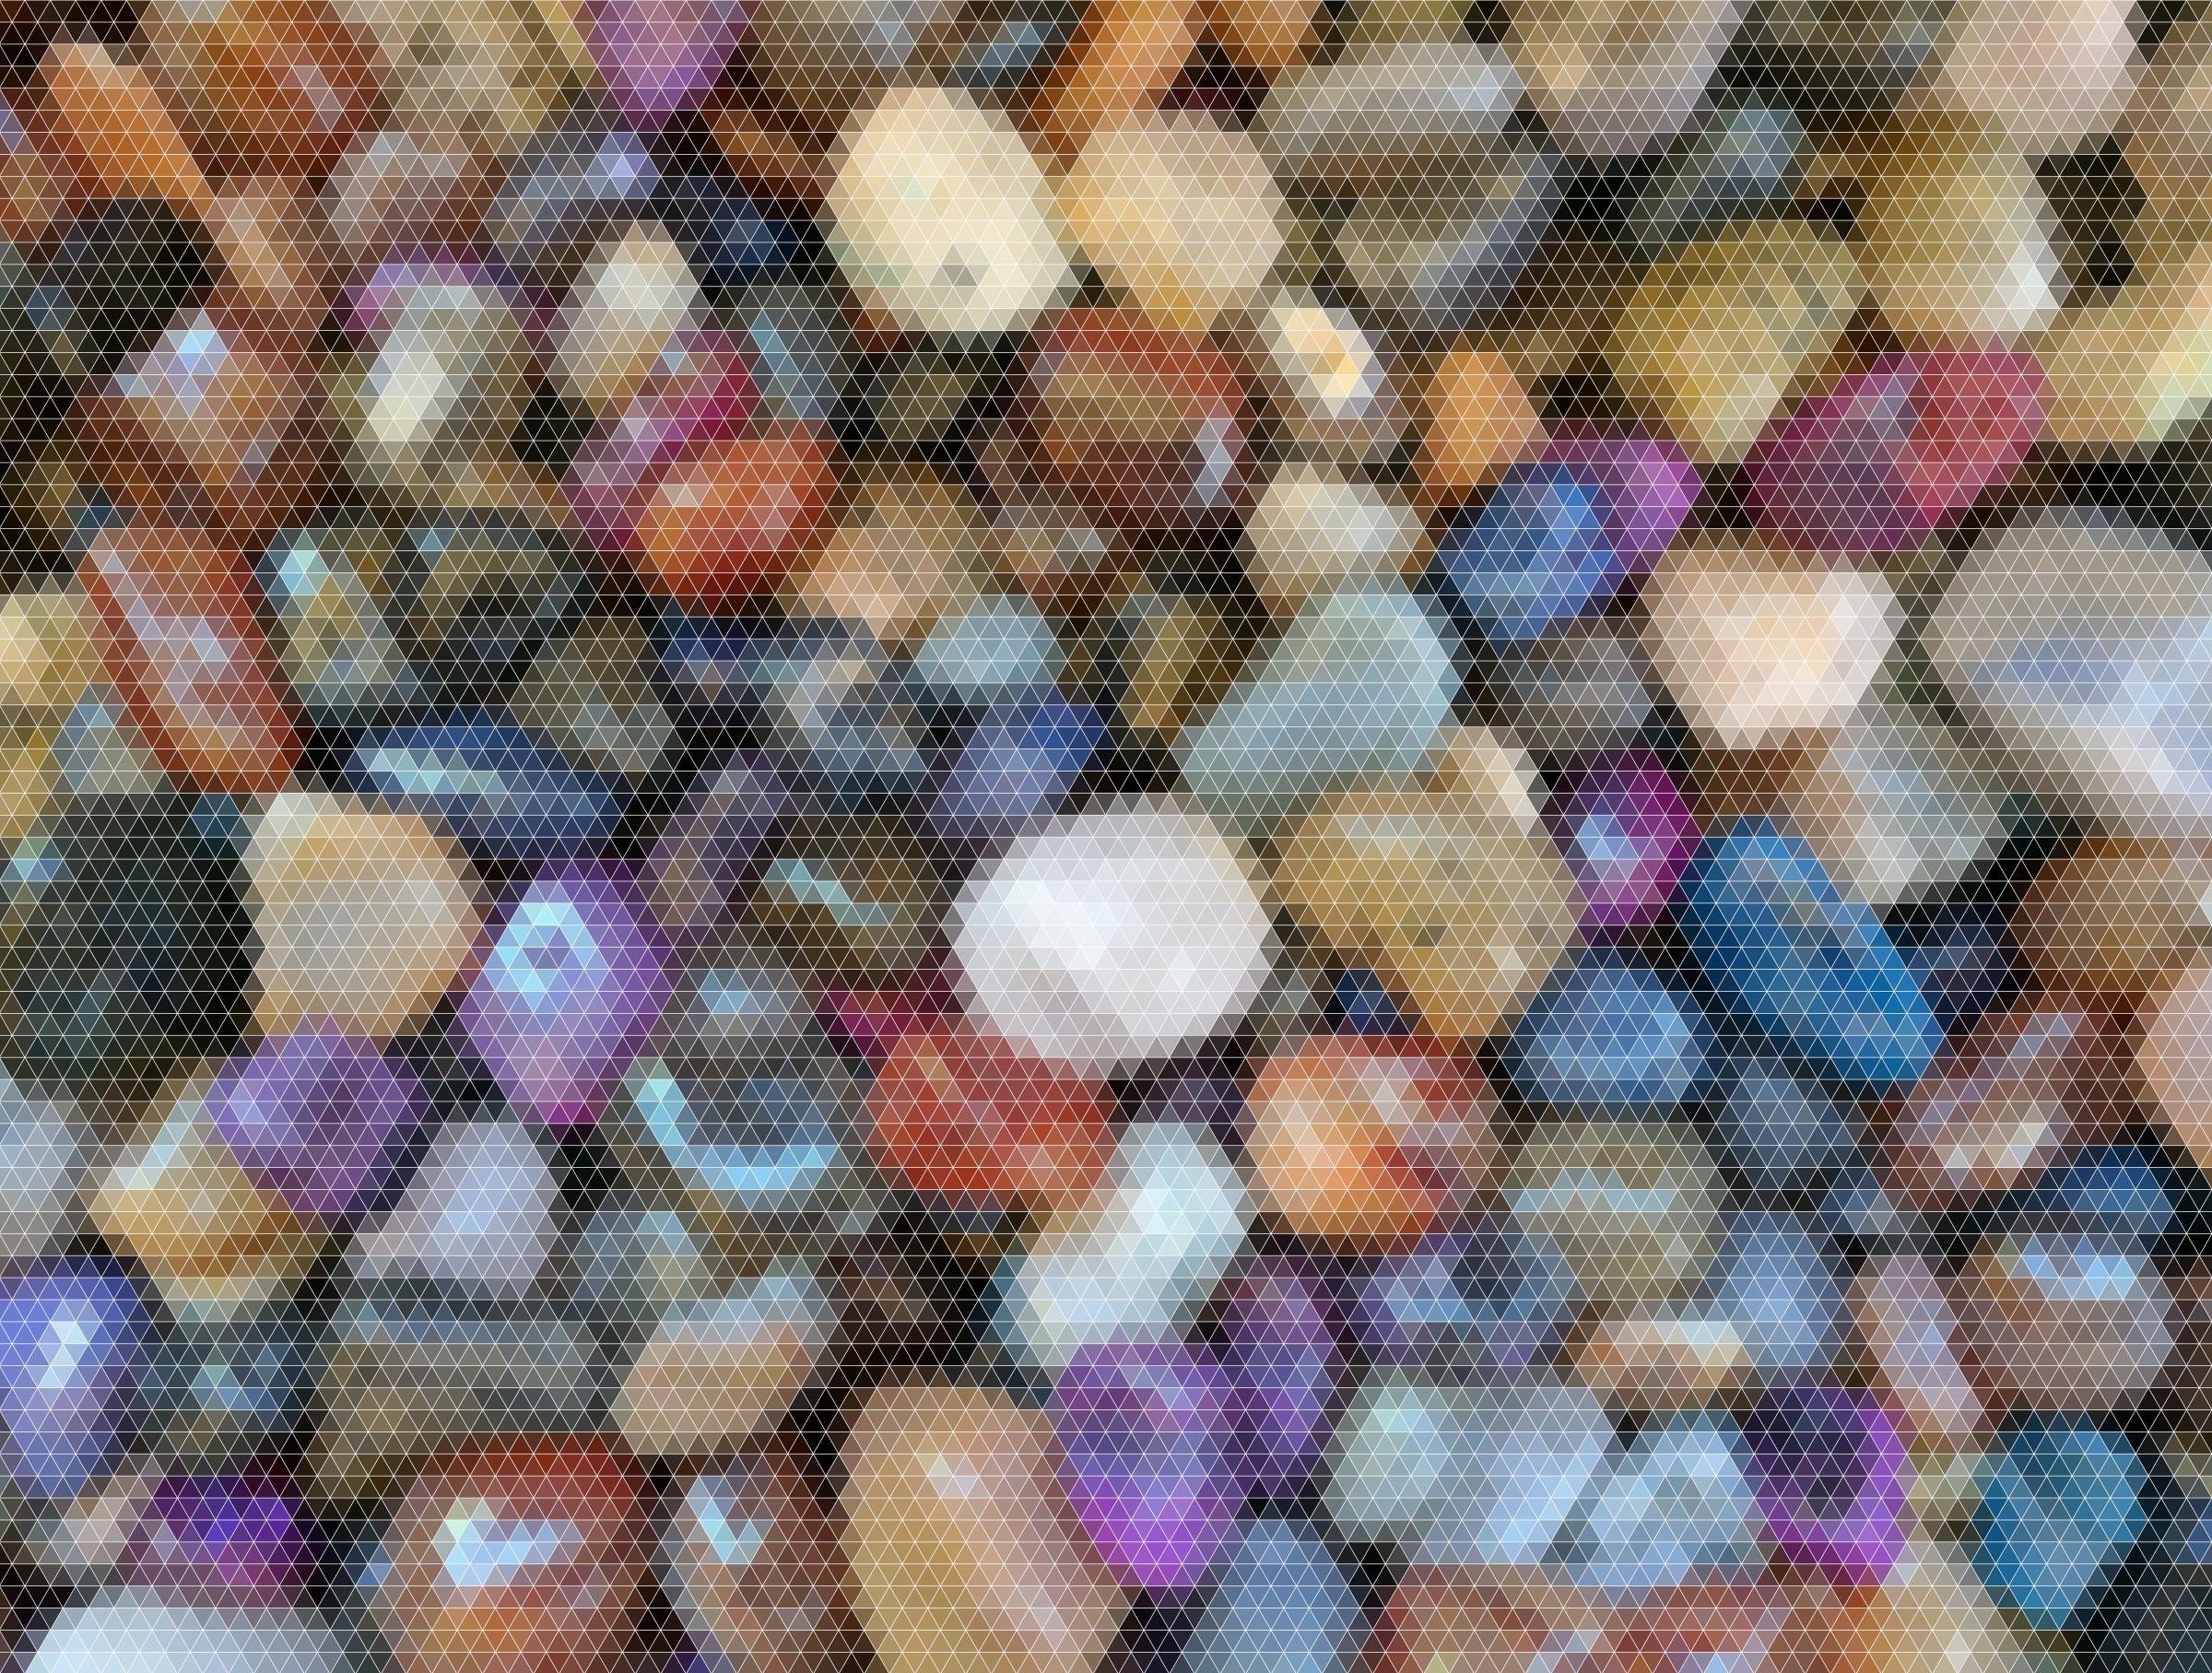 Prismatic Stones Triangular Mosaic by GDJ